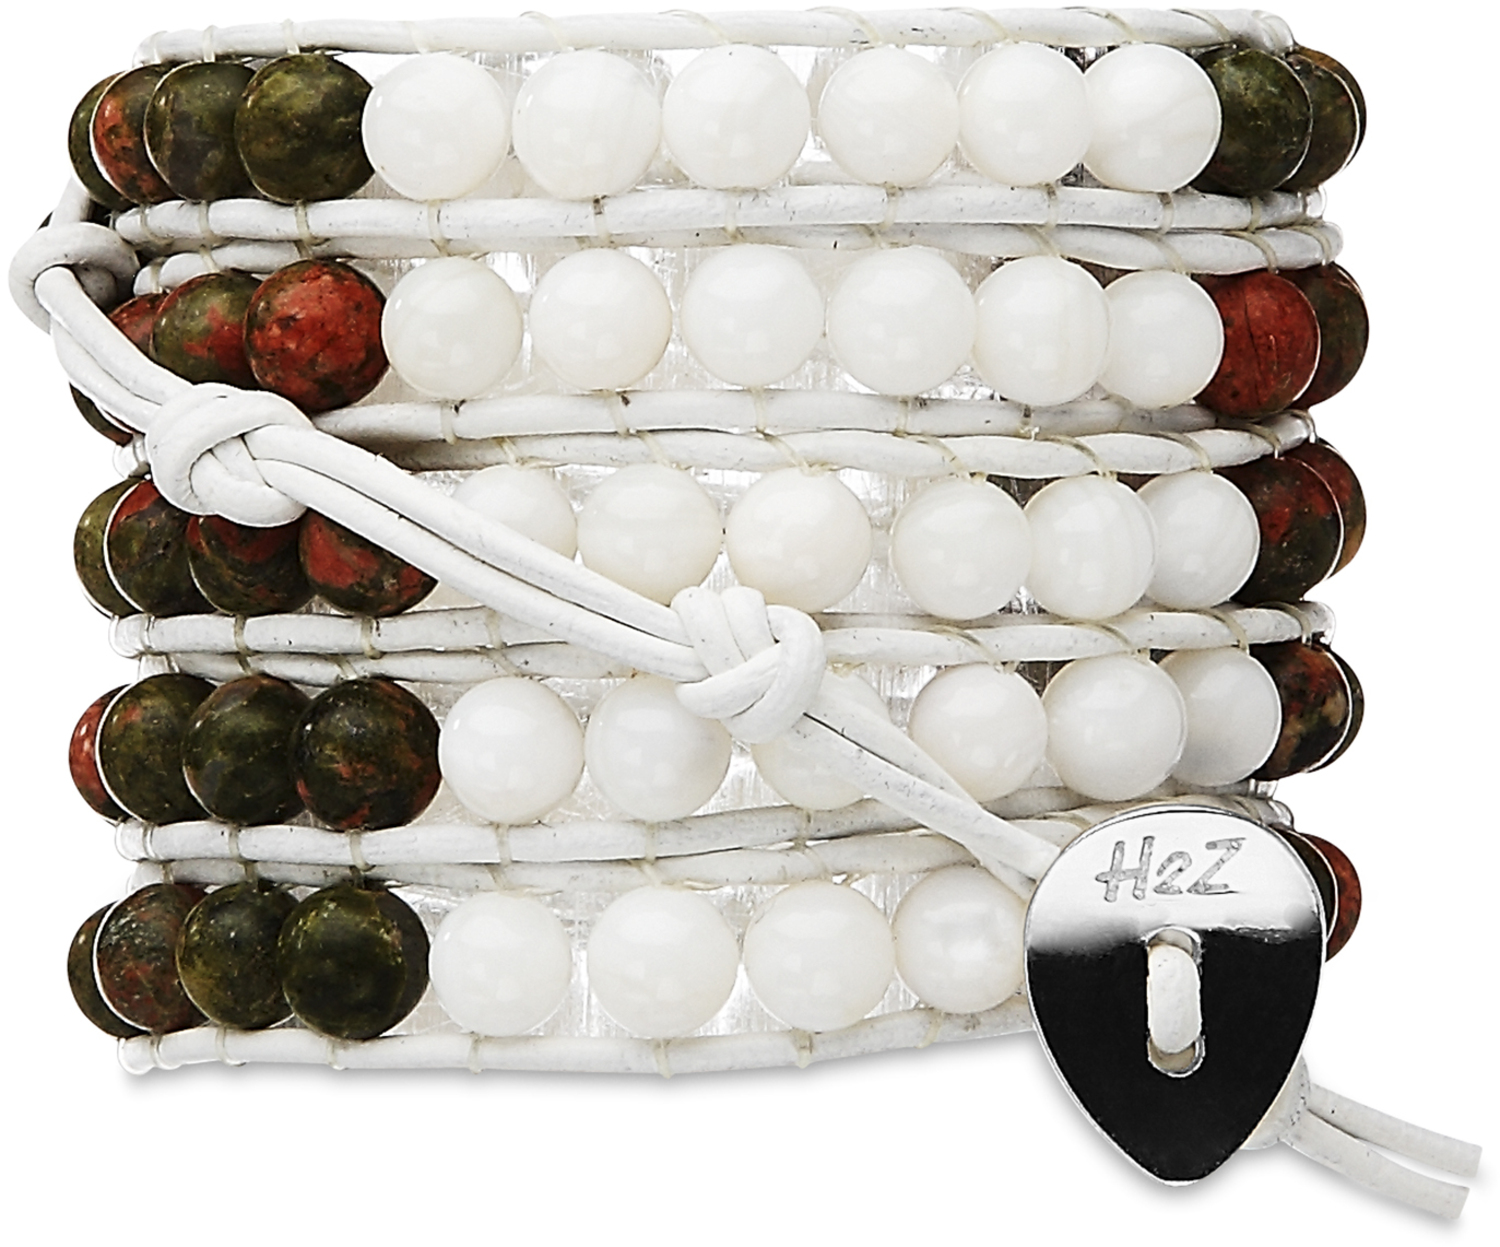 Olivine-Olive & White Shell by H2Z - Wrap Bracelets - Olivine-Olive & White Shell - 35 Inch Olive Semi-Precious  Stones and White Shell Beads w/ White Leather Wrap Bracelet